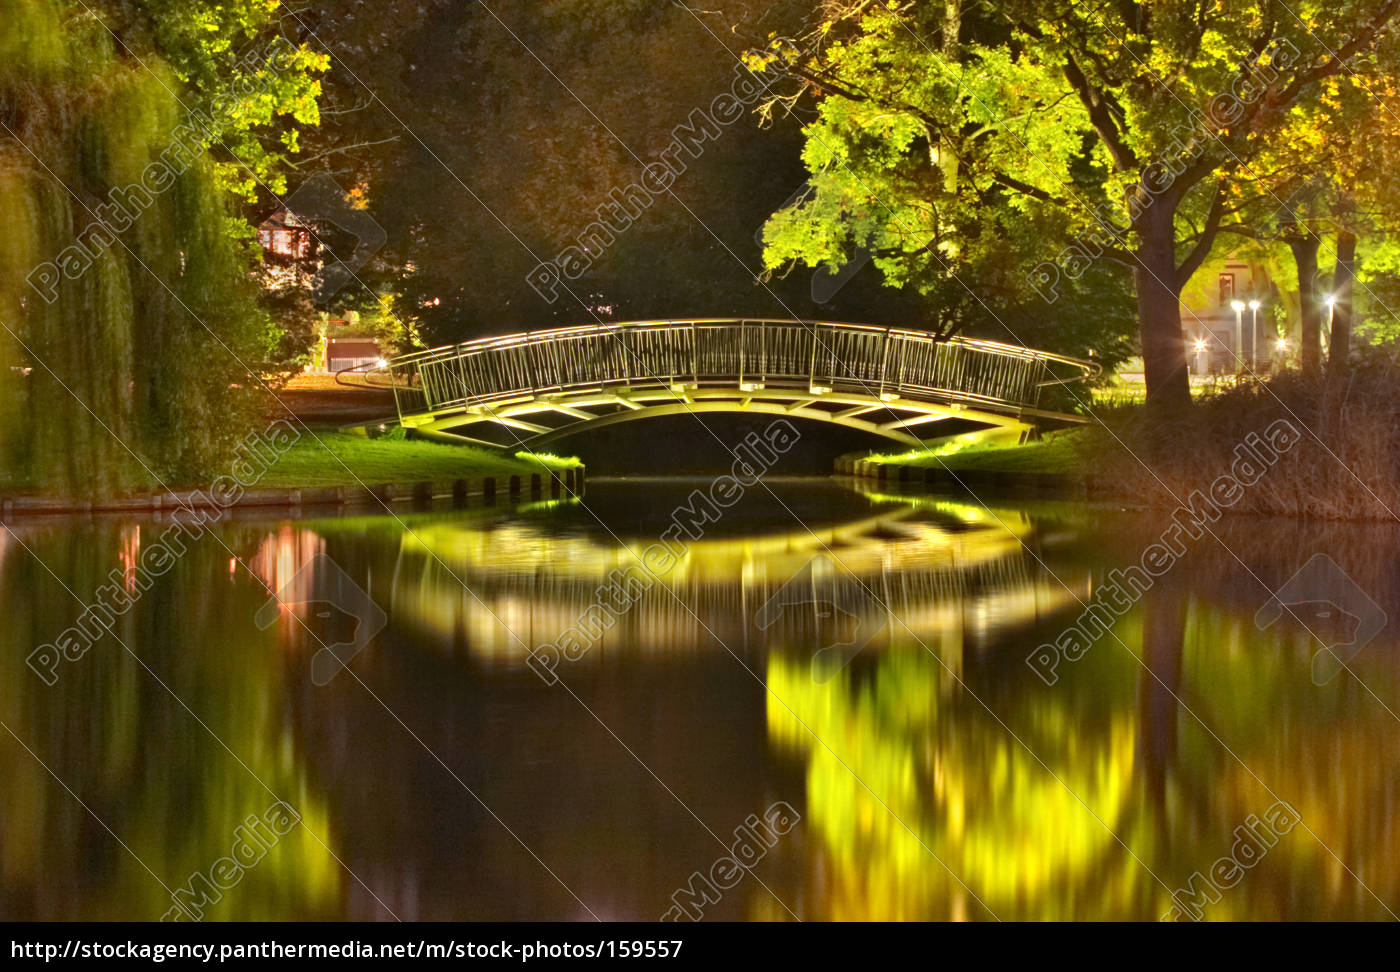 the, night, bridge, ... - 159557